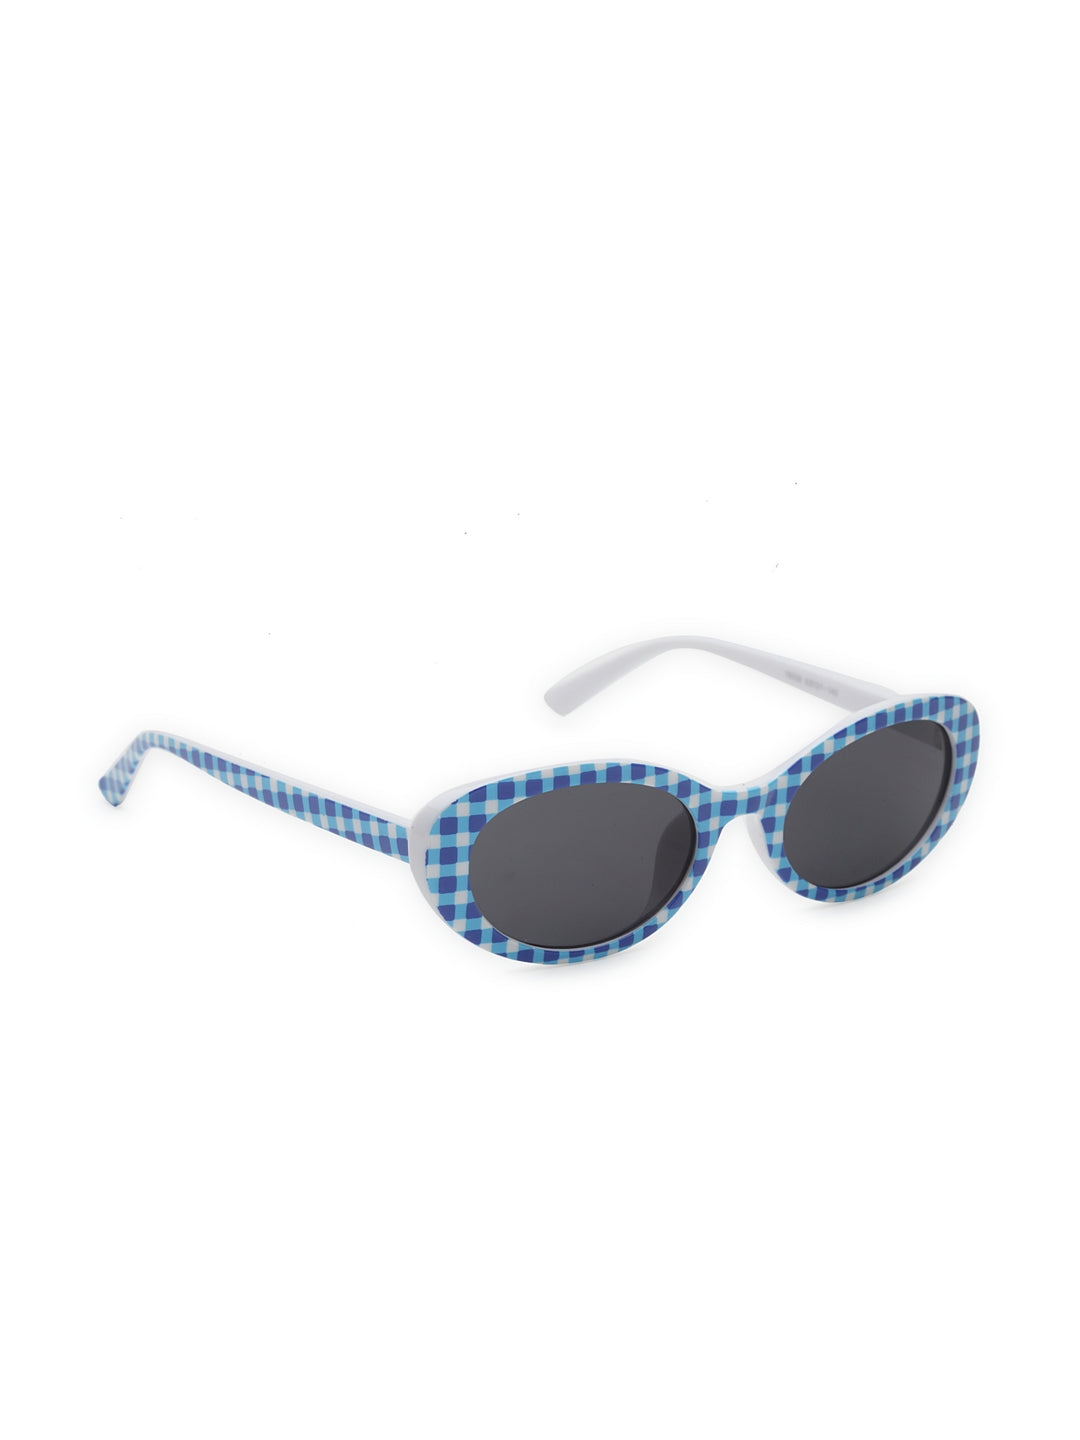 Avant-Garde Paris Cateye Cool Fashion Sunglasses